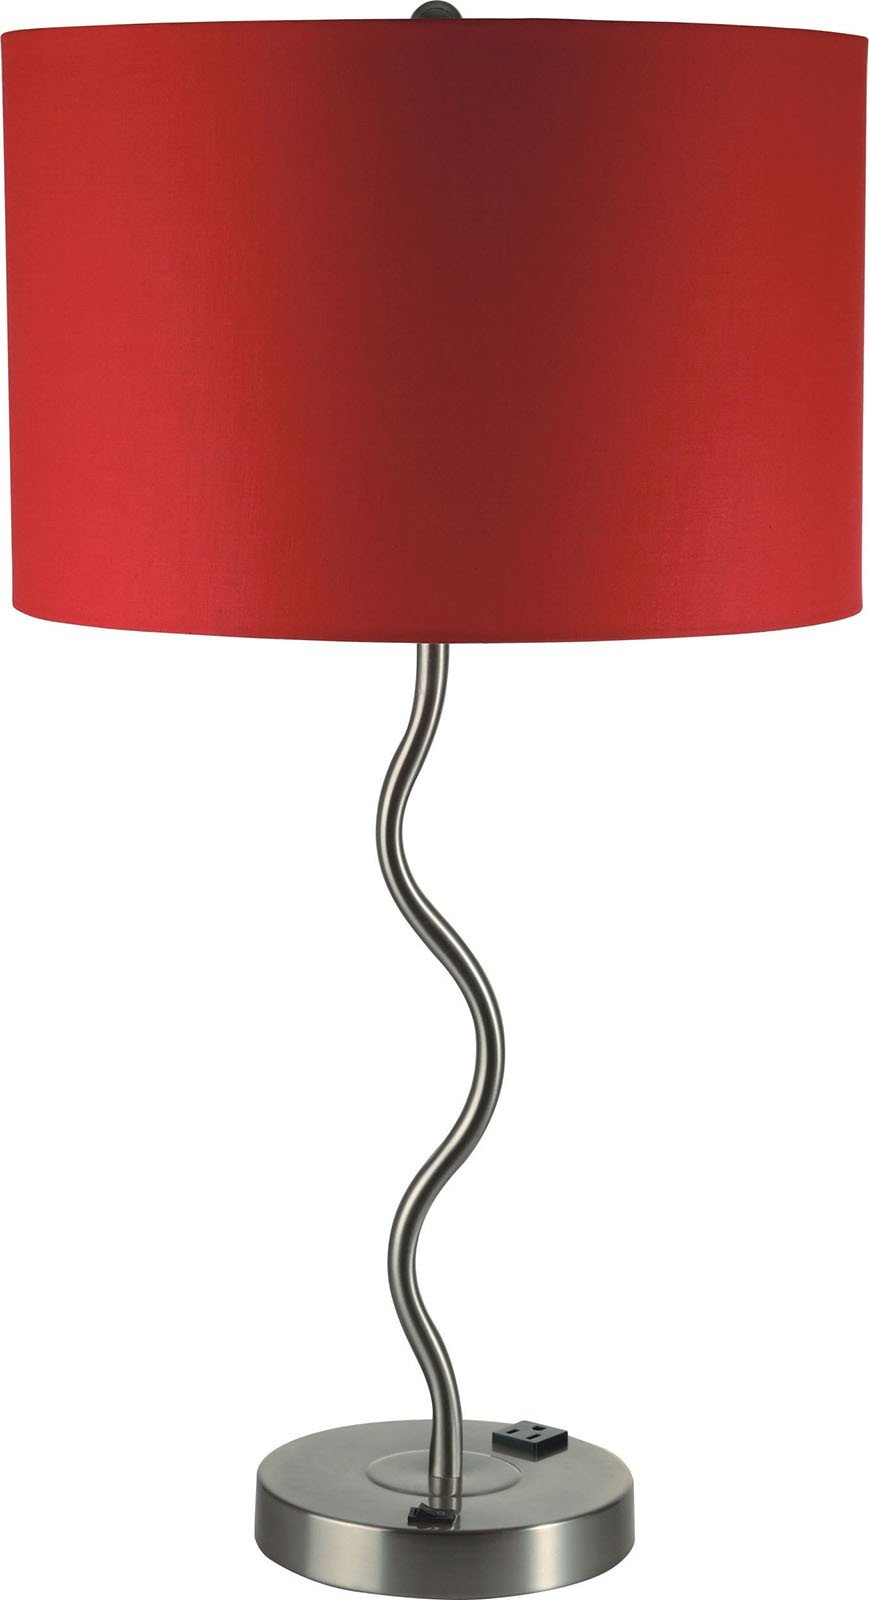 Furniture of America L76224T-RD-2PK Sprig Red Table Lamp Set of 2 Miscellaneous-Others